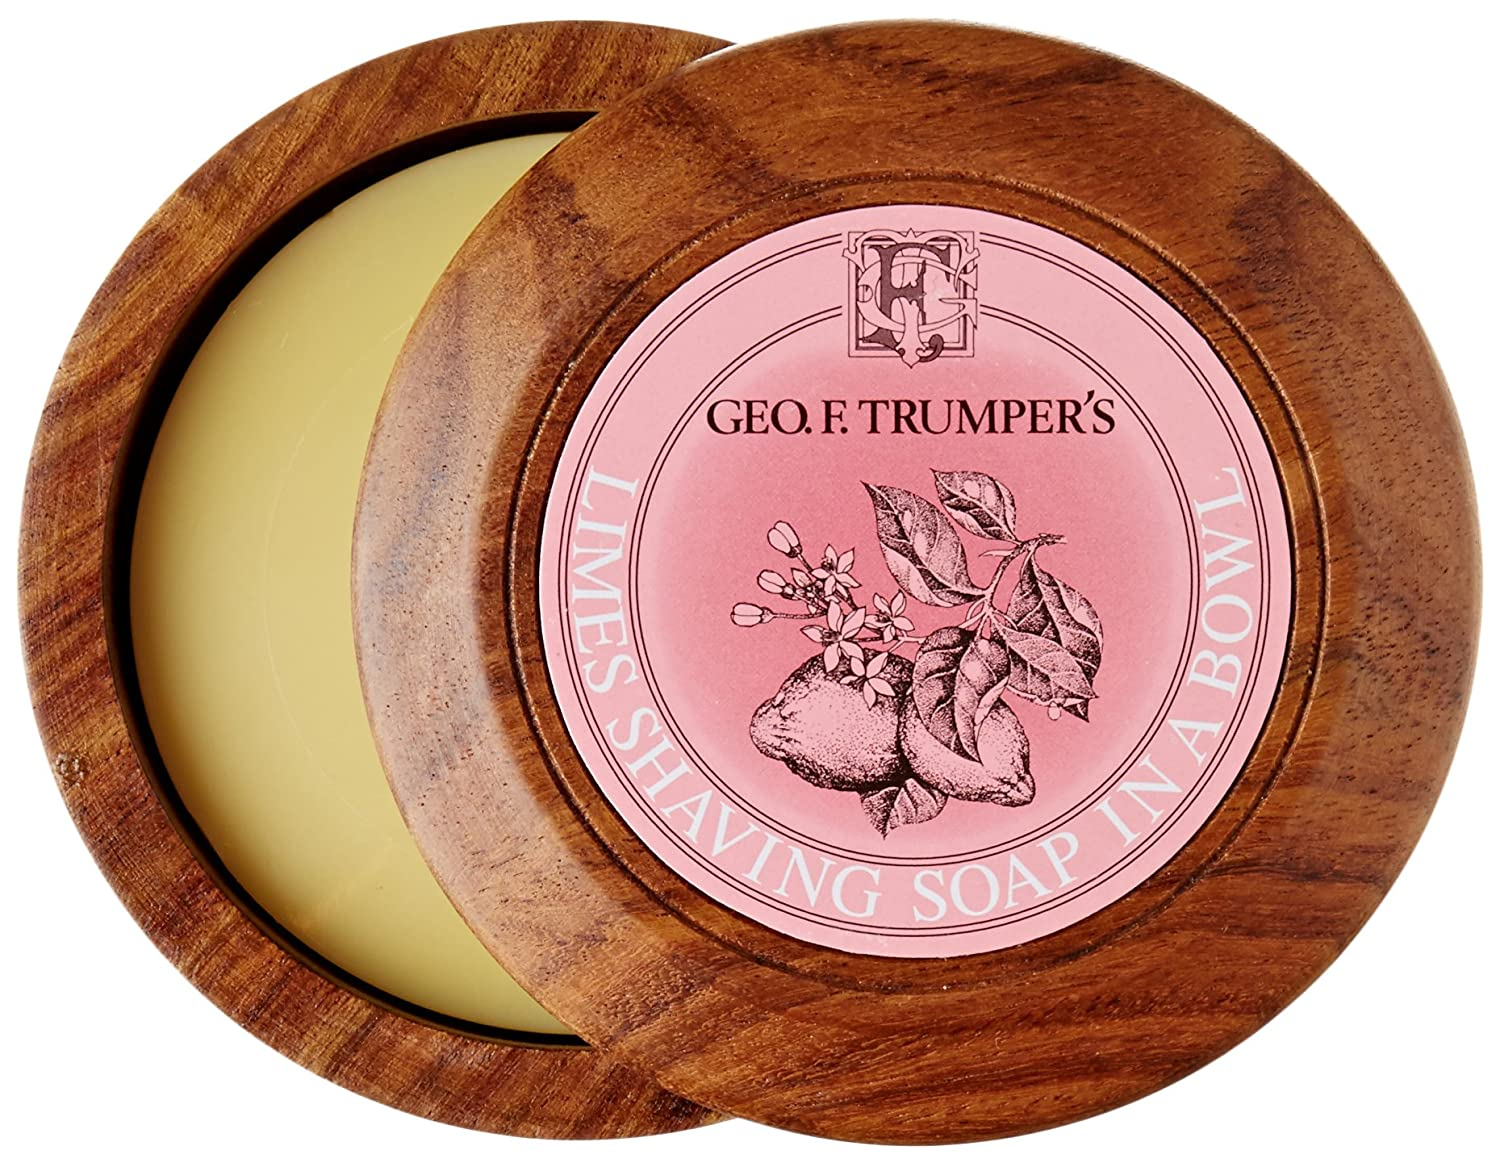 Geo F Trumper Wooden Shave Bowl - Extract of Limes (Normal) Geo F. Trumper W090389 Cosmetics and Fragrances male grooming